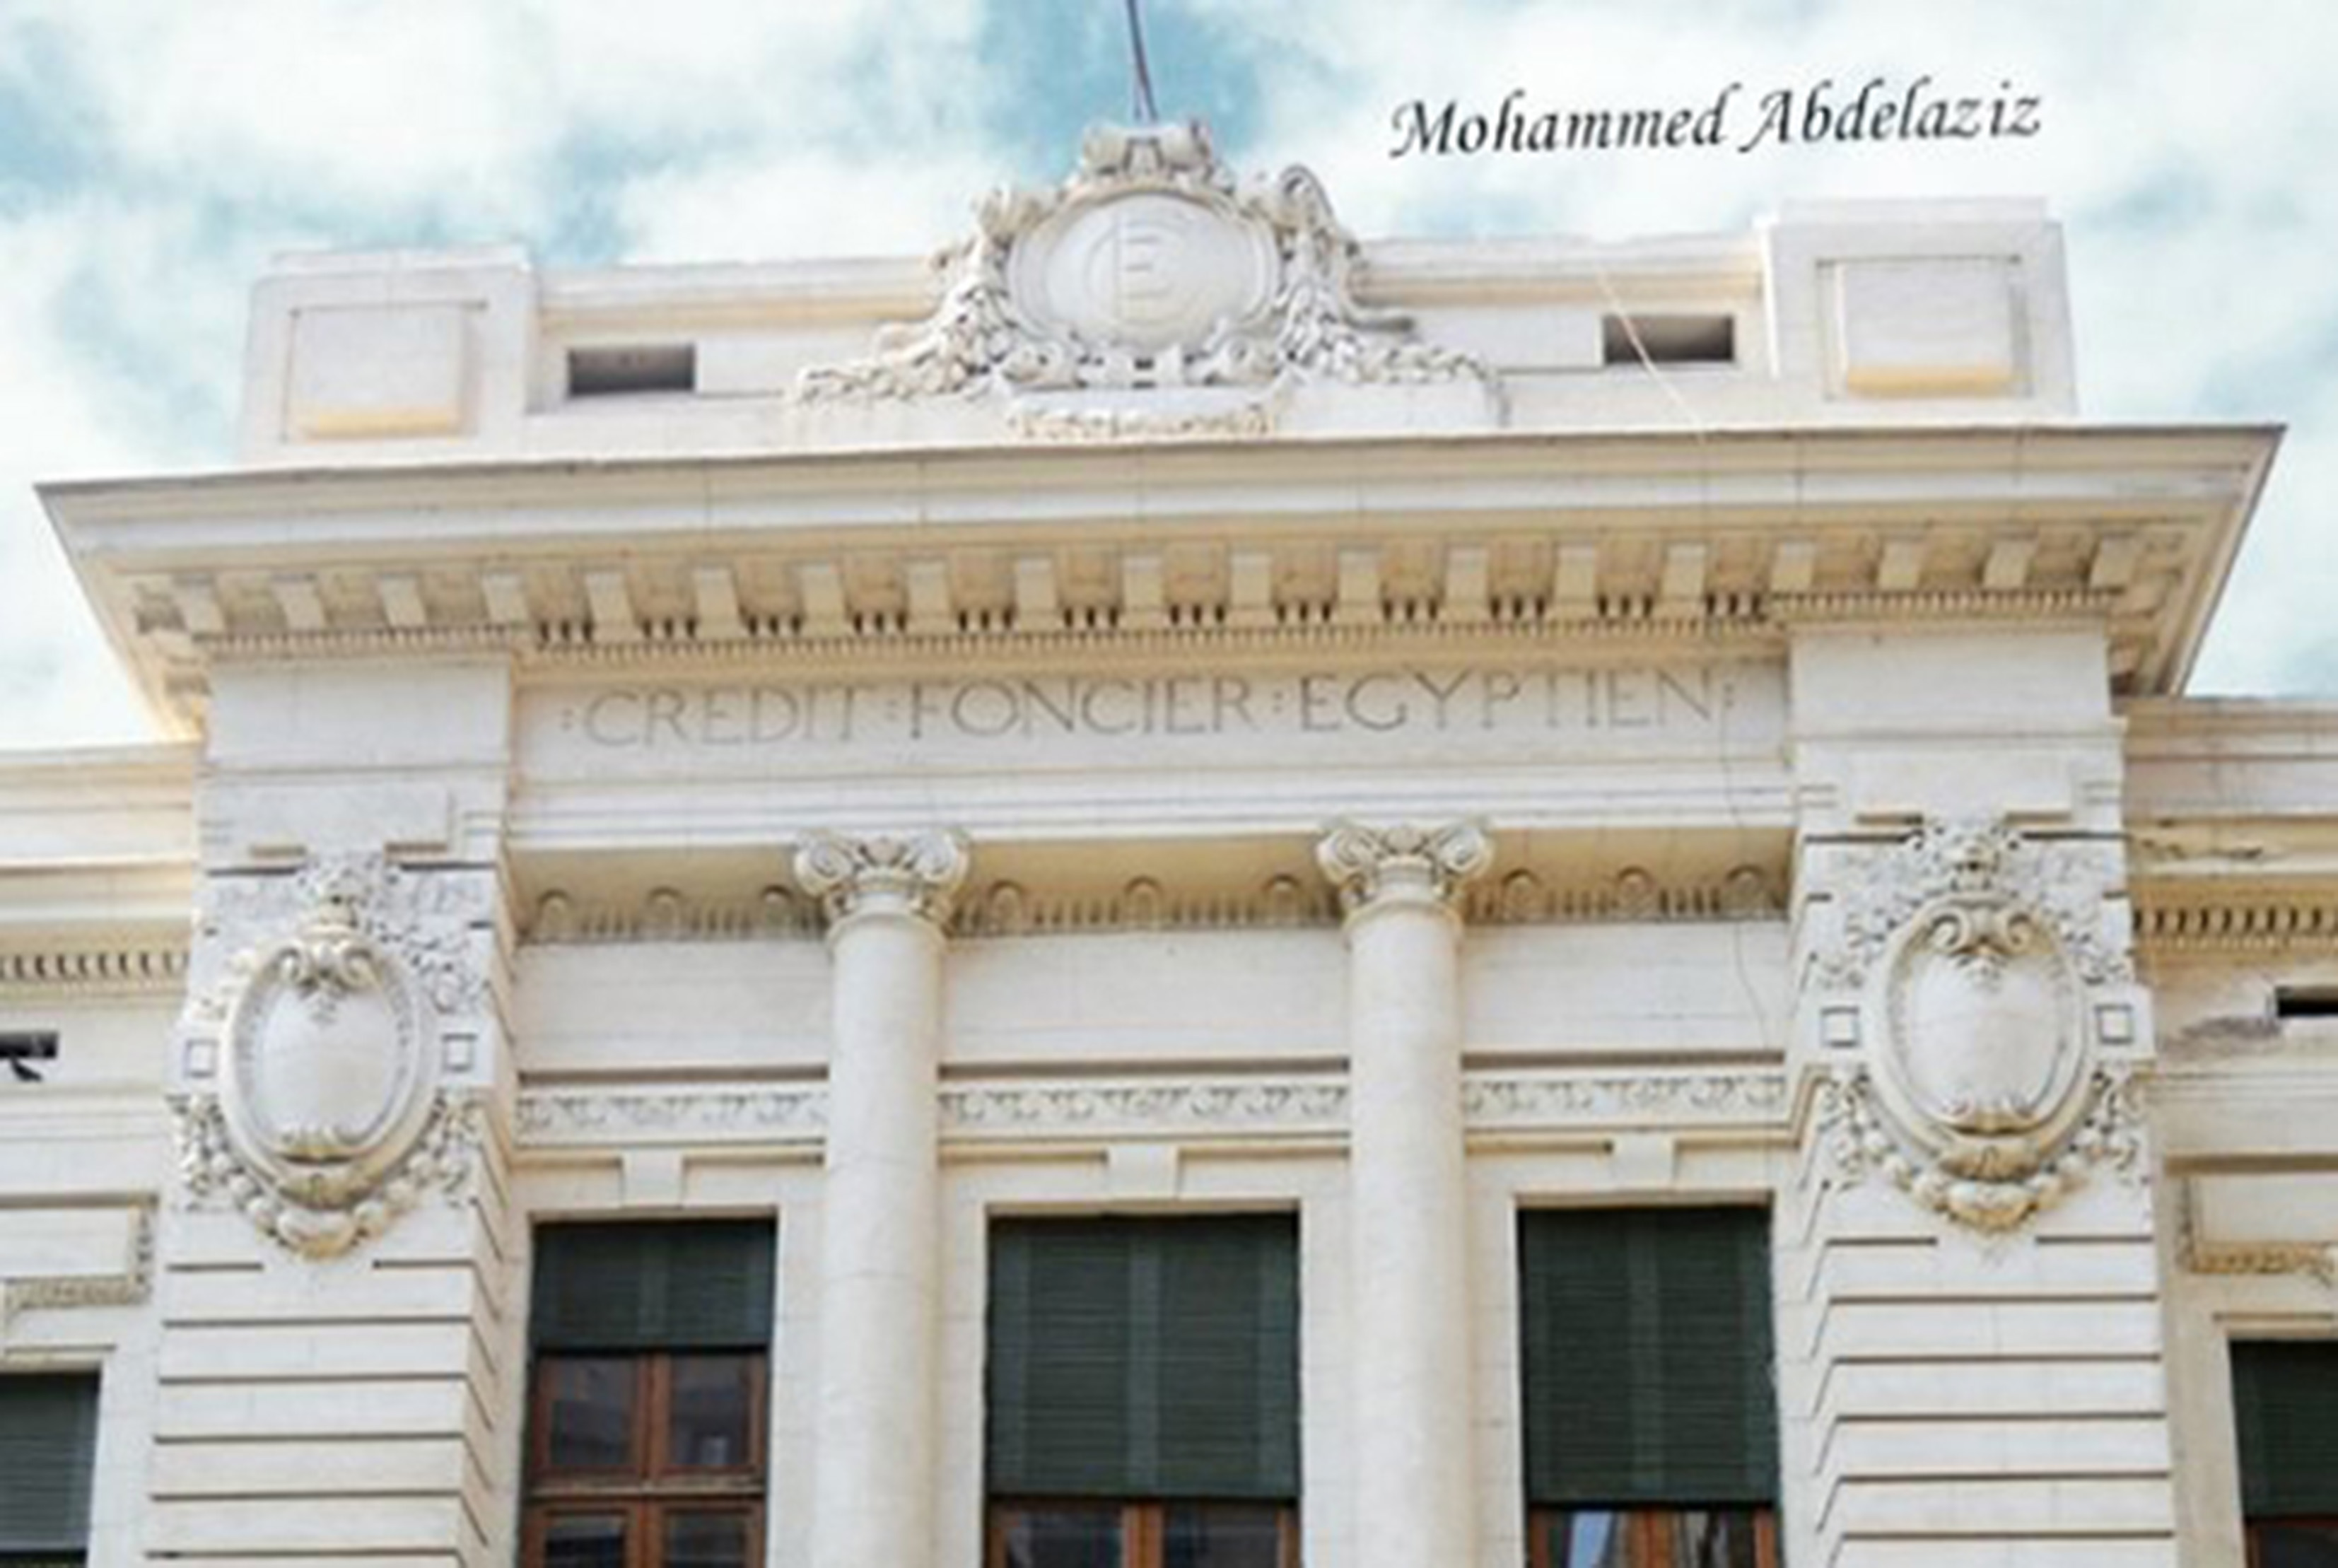 Credit Foncier Egyptien - Downtown Cairo